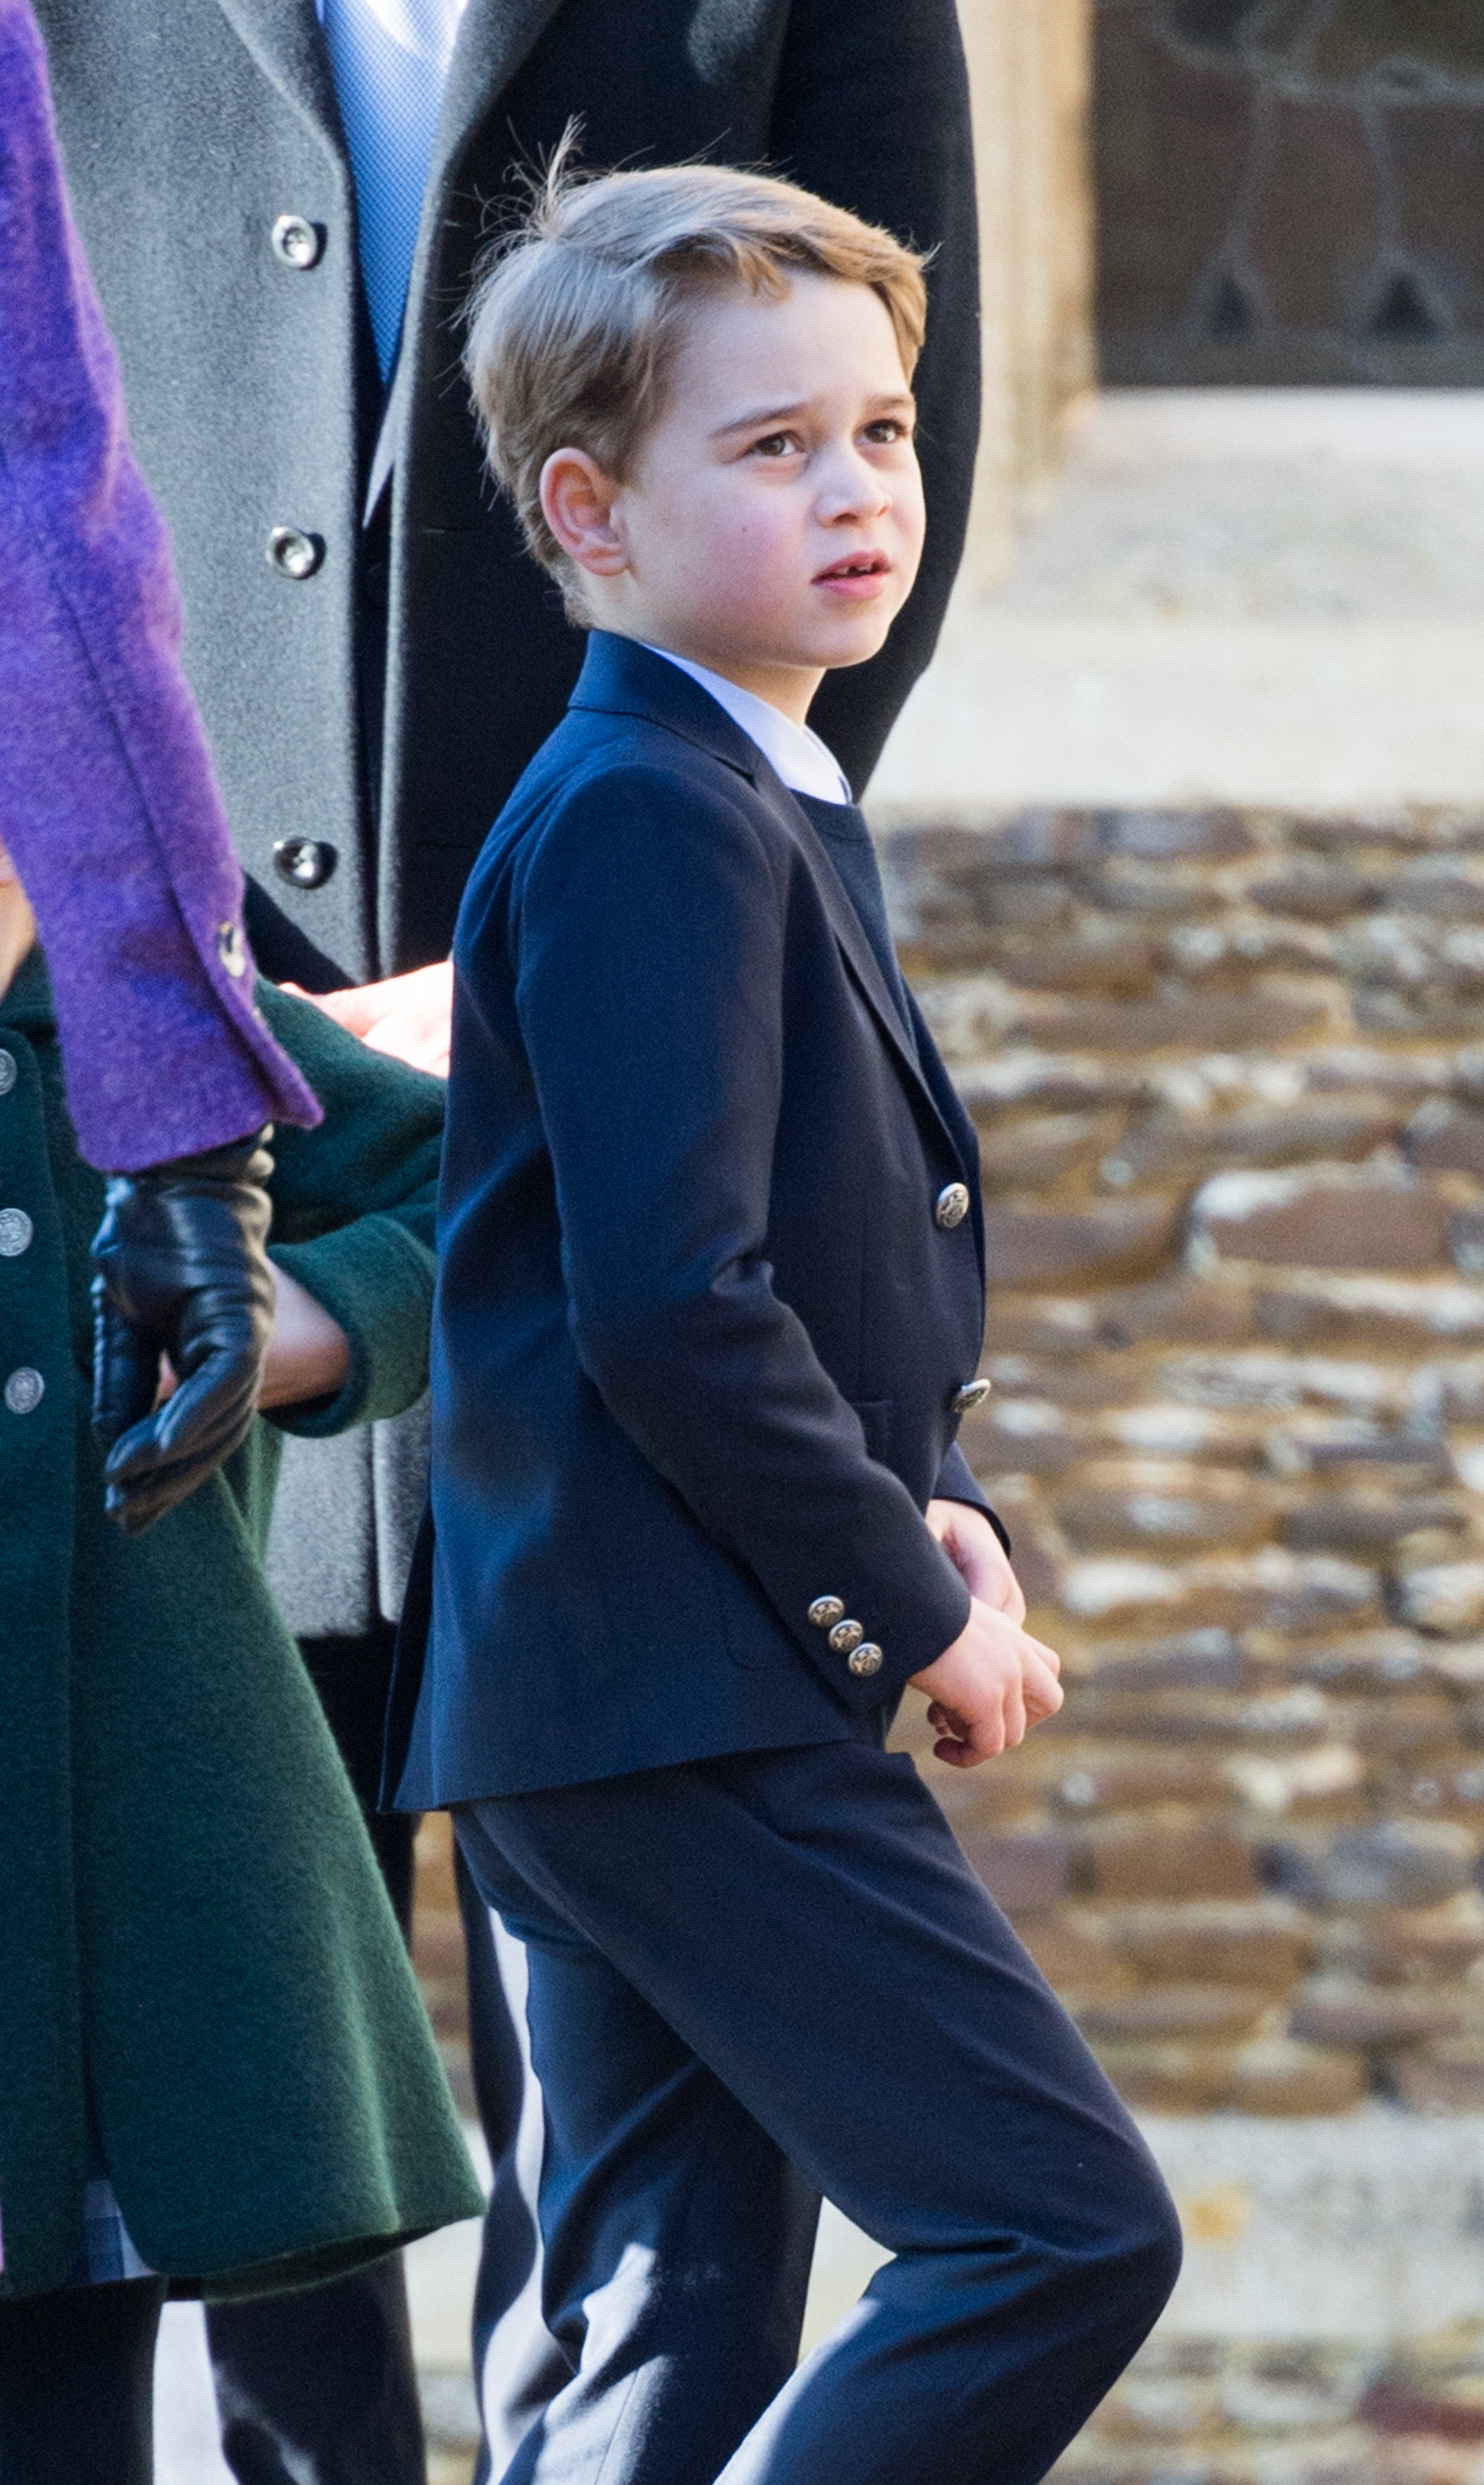 KING'S LYNN, ENGLAND - DECEMBER 25:  Prince George of Cambridge attends the Christmas Day Church service at Church of St Mary Magdalene on the Sandringham estate on December 25, 2019 in King's Lynn, United Kingdom. (Photo by Pool/Samir Hussein/WireImage)